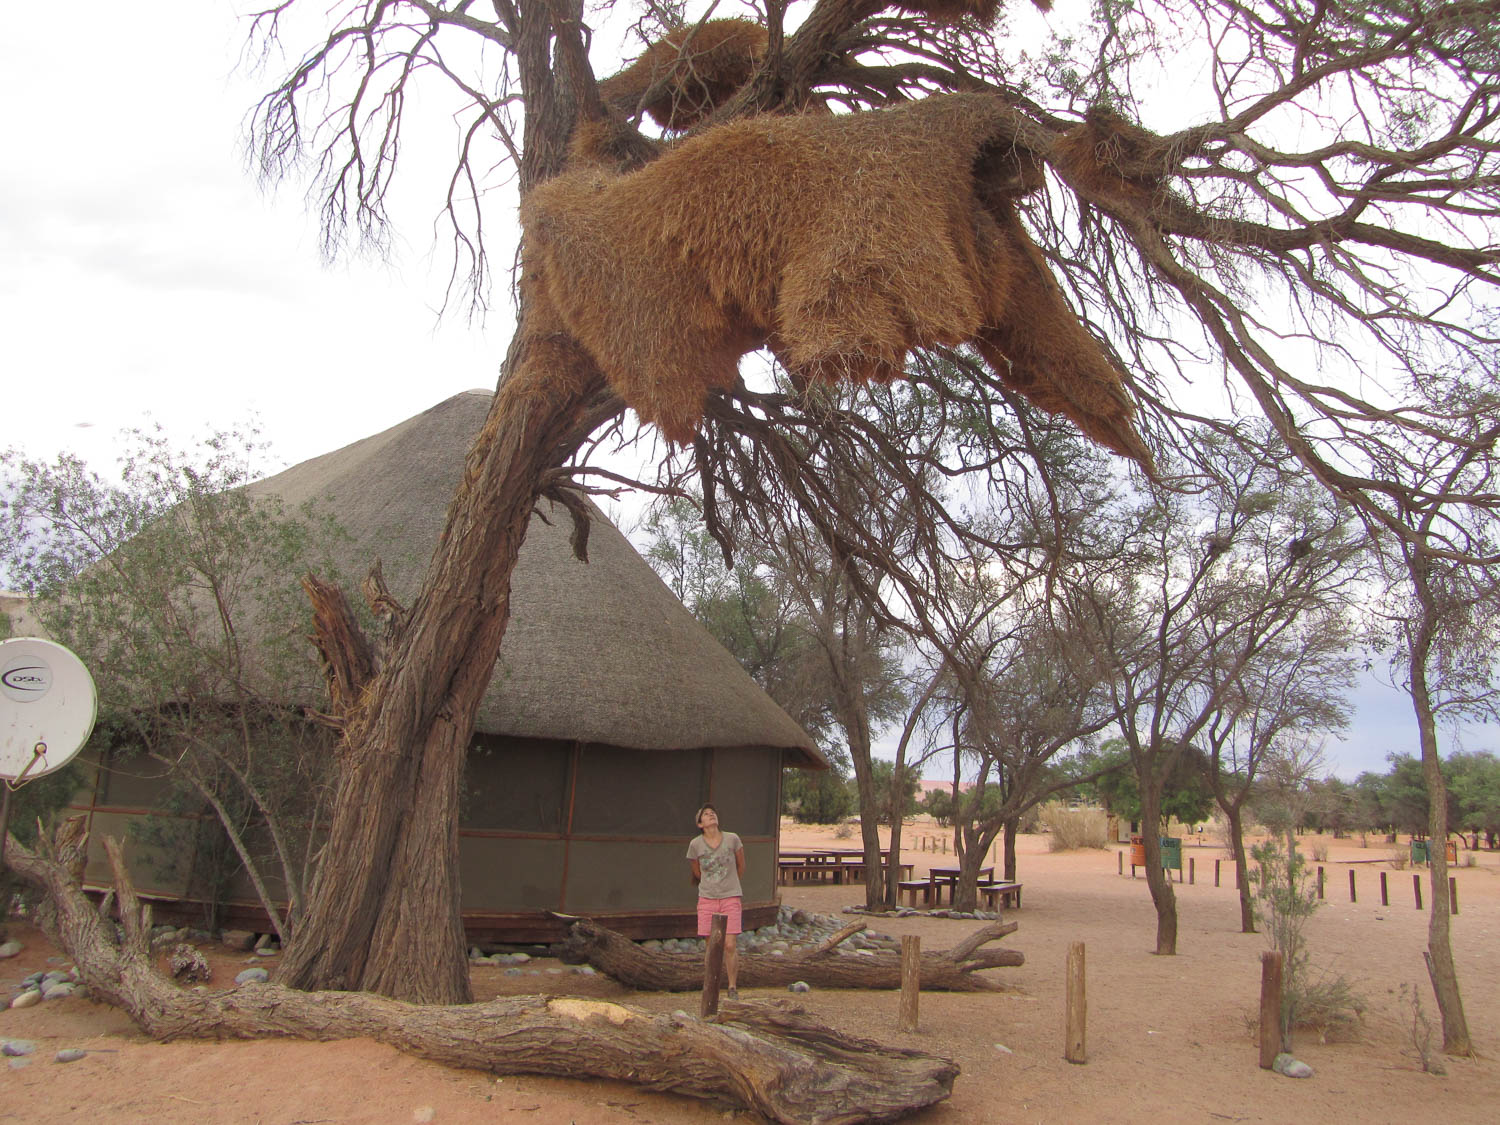 Huge Social Weavers Nest in Namibia with South Africa Overland 4x4 Tours